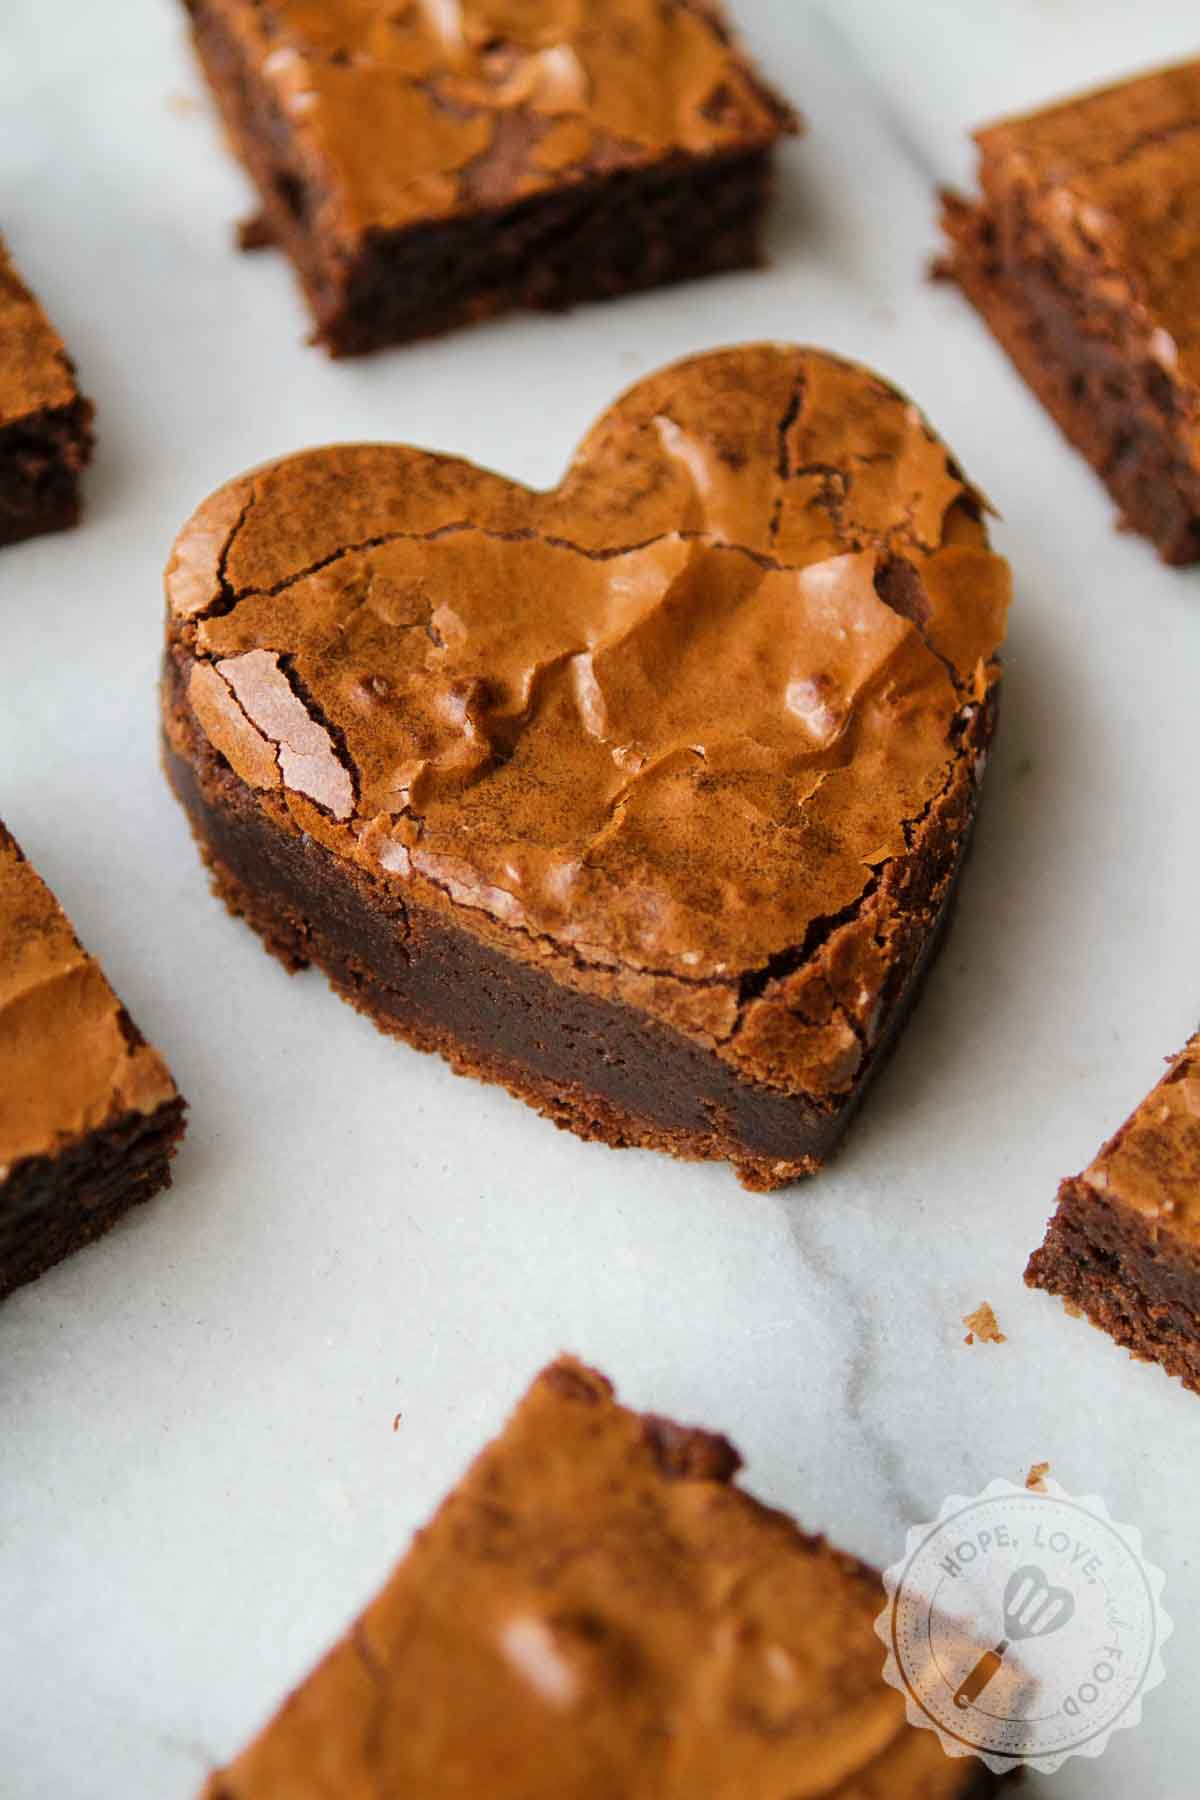 Heart-shaped brownie.